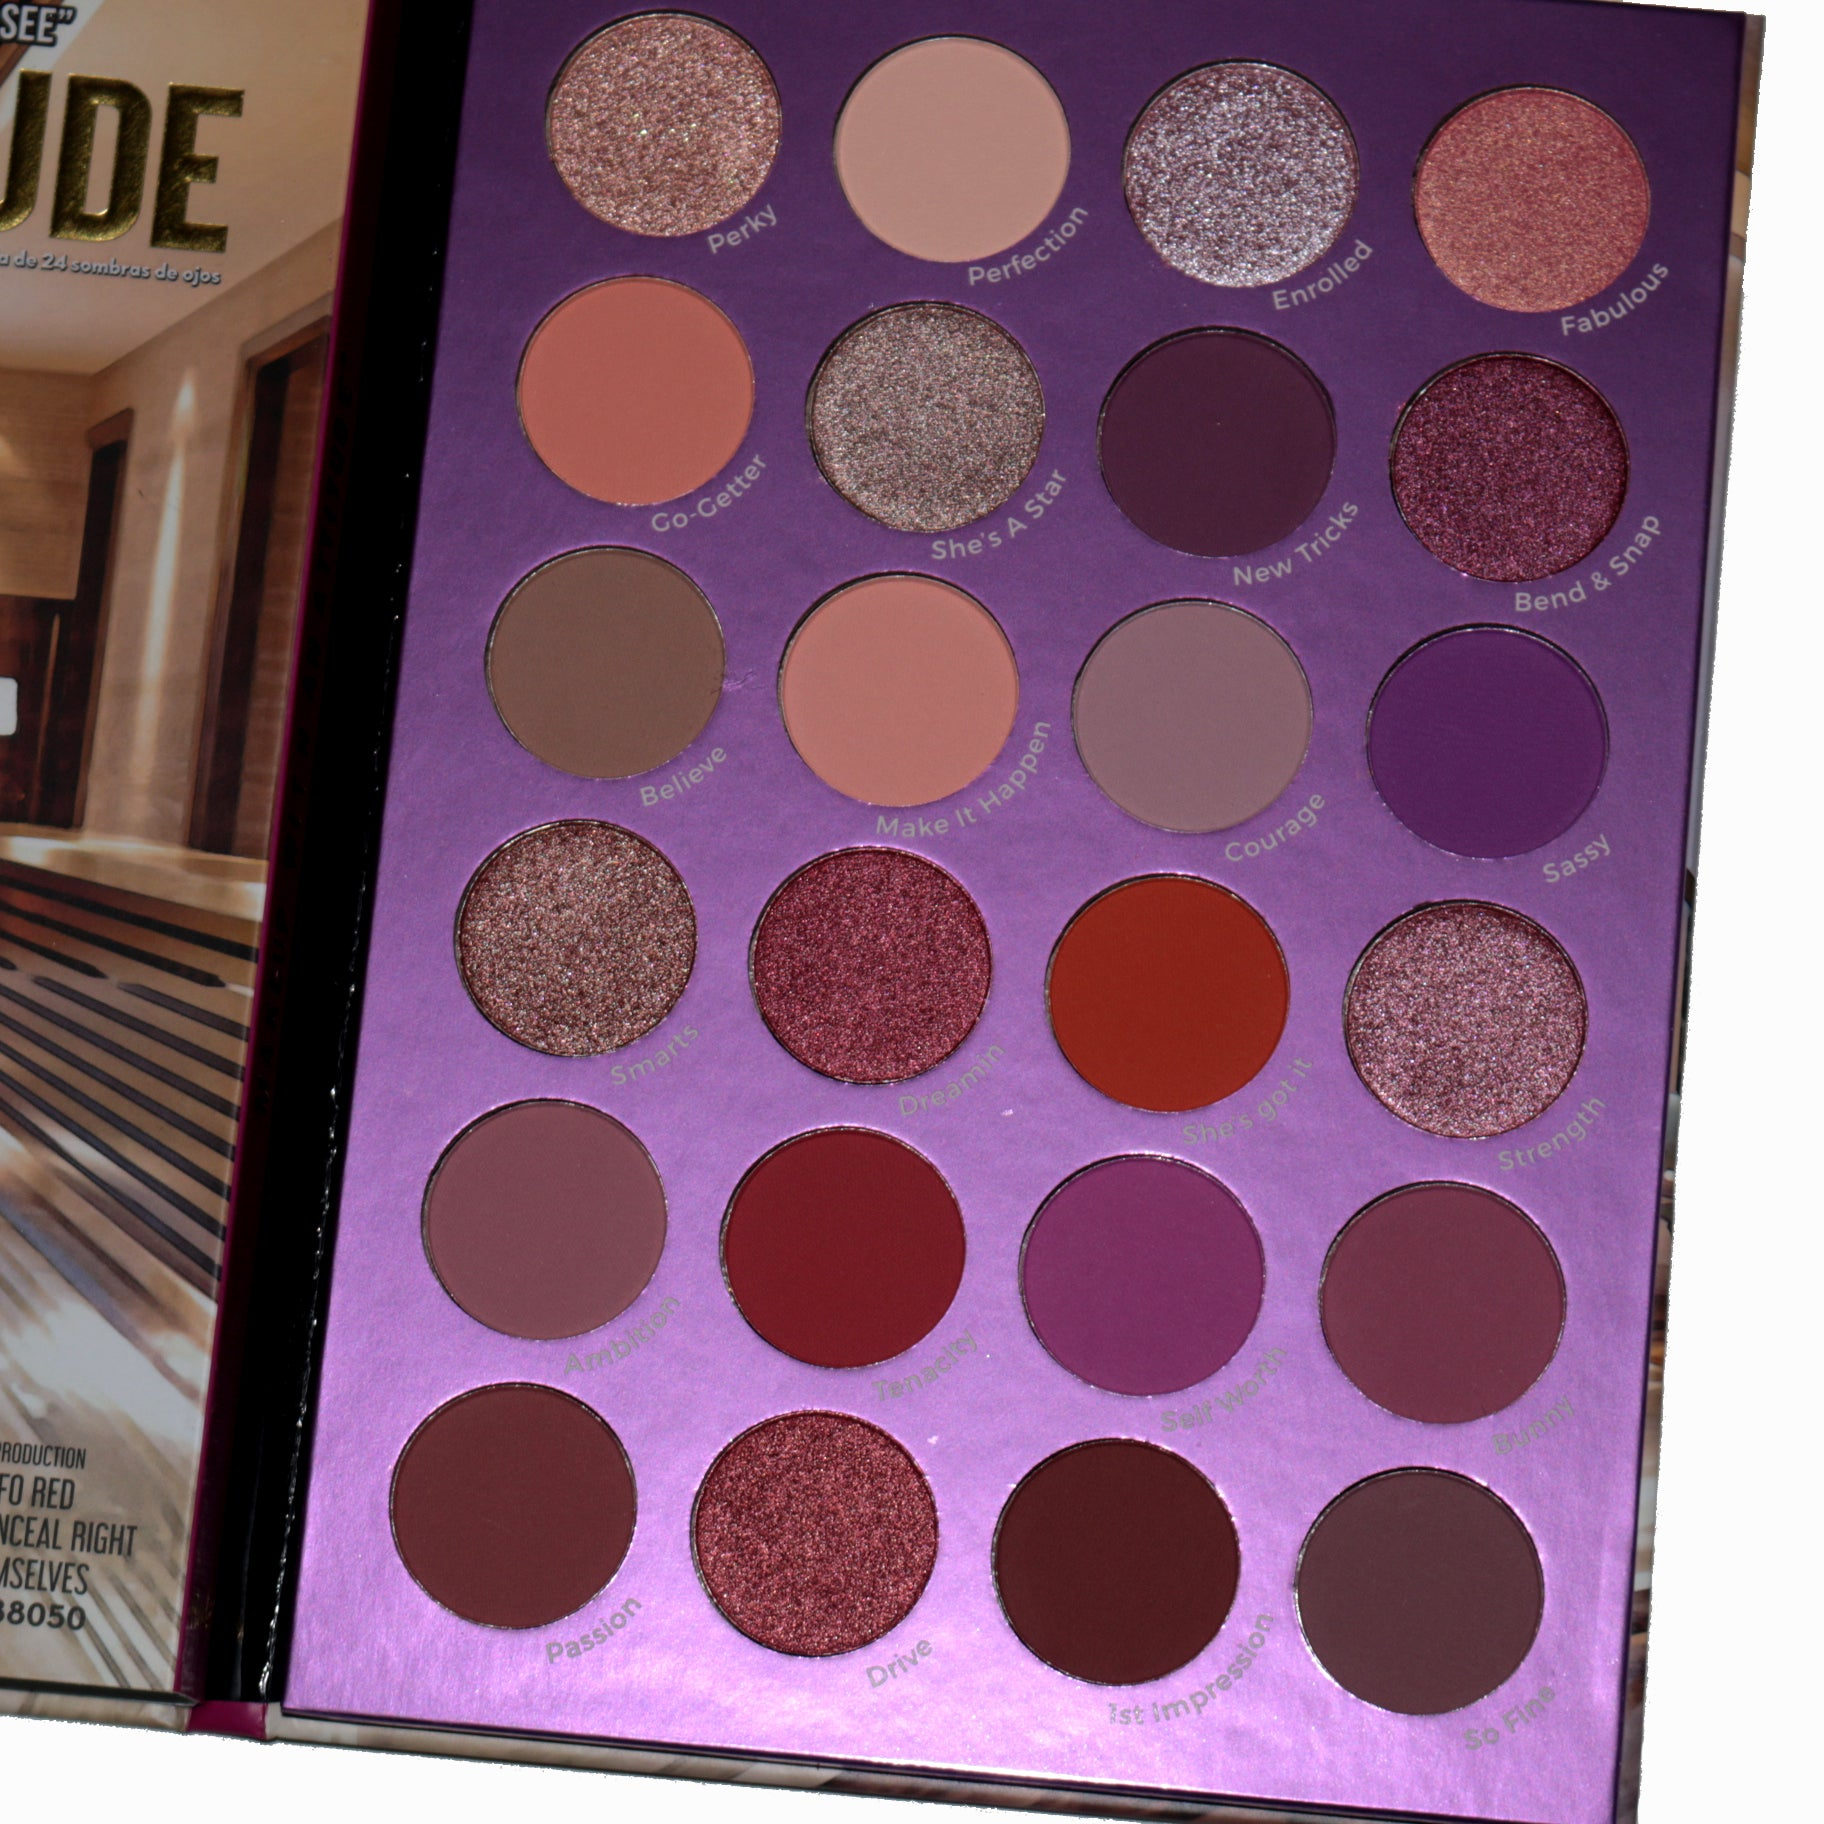 Legally Nude - 24 Eyeshadow Palette